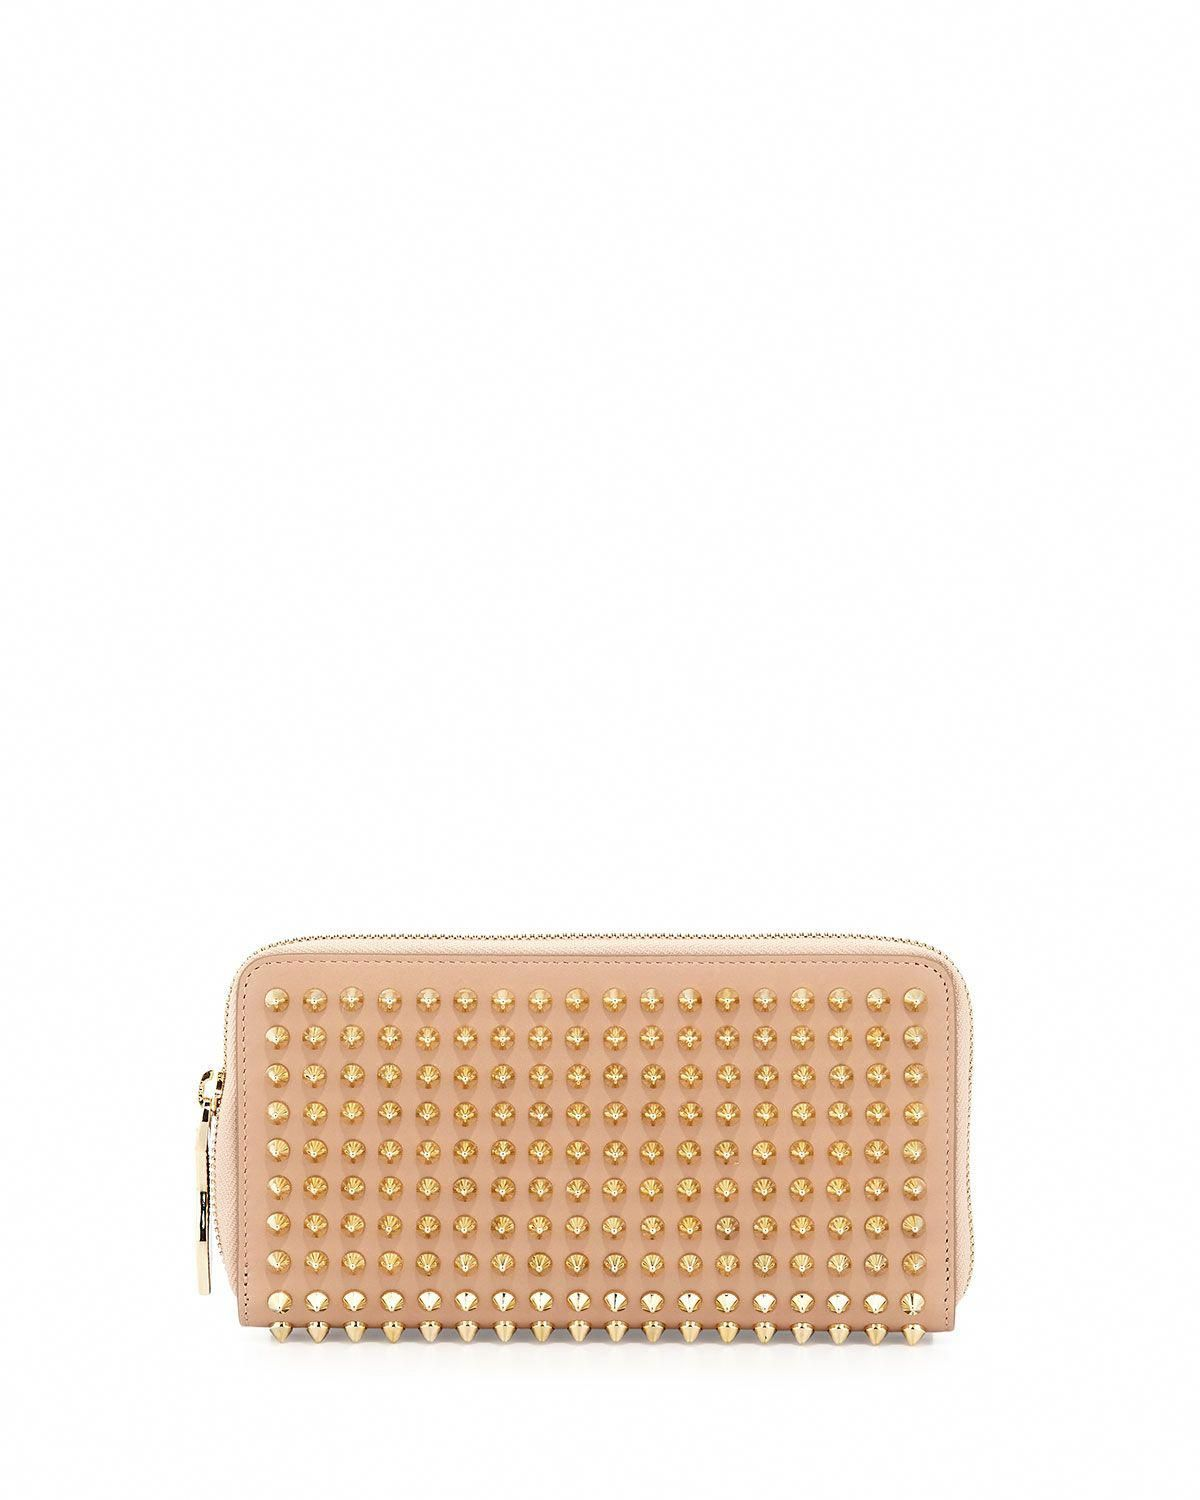 4fbeee26f39 Christian Louboutin Panettone Spike Stud Continental Wallet, Nude ...